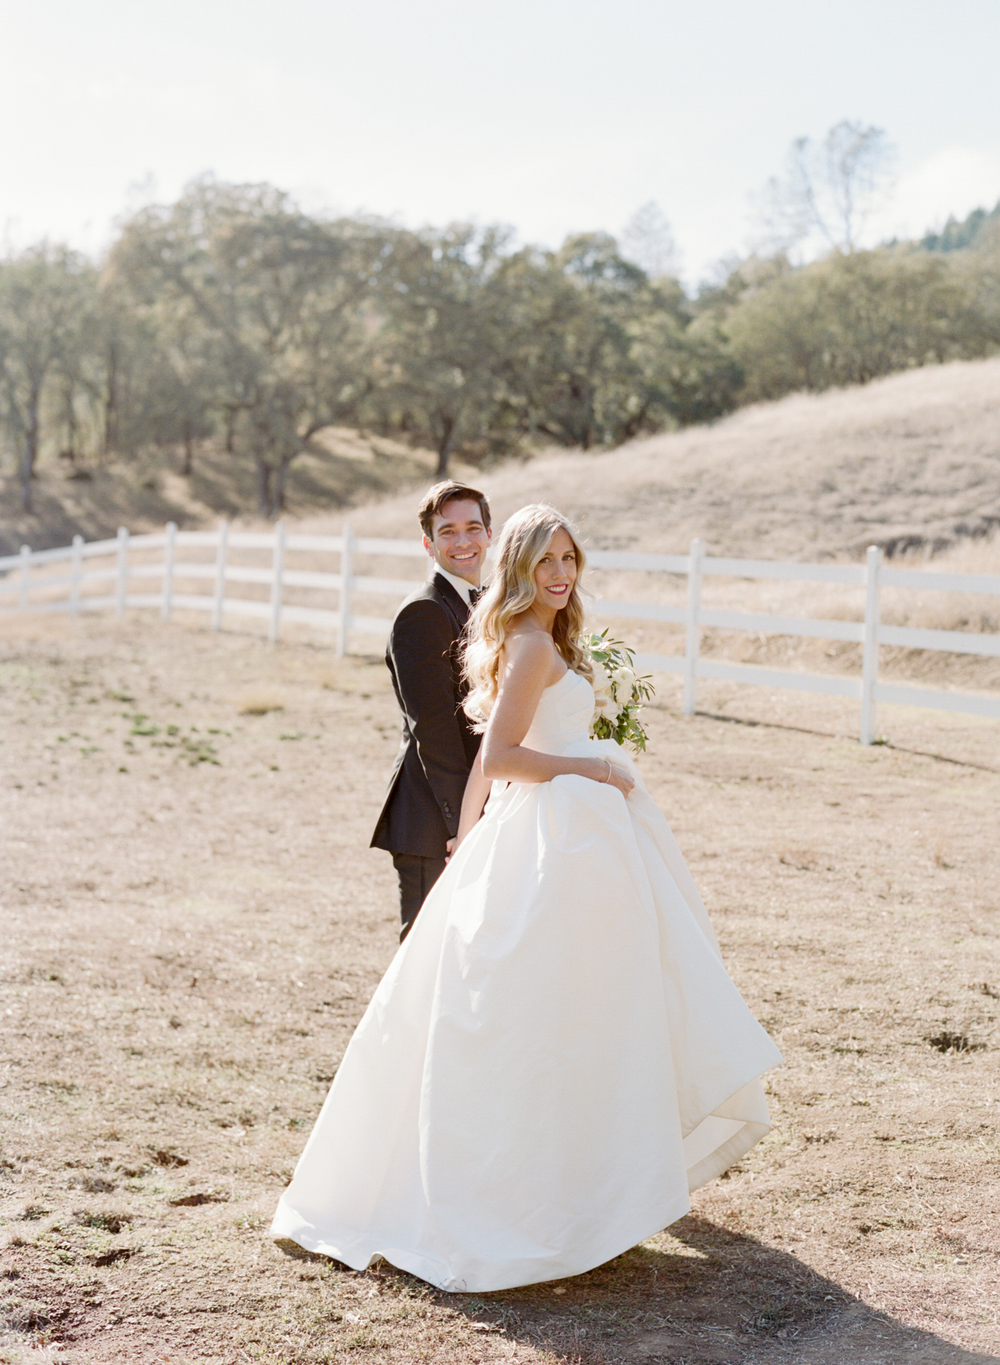 SylvieGil-Durham-Ranch-Organic-Ethereal-Rustic-Romantic-Industrial-Chic-Wedding